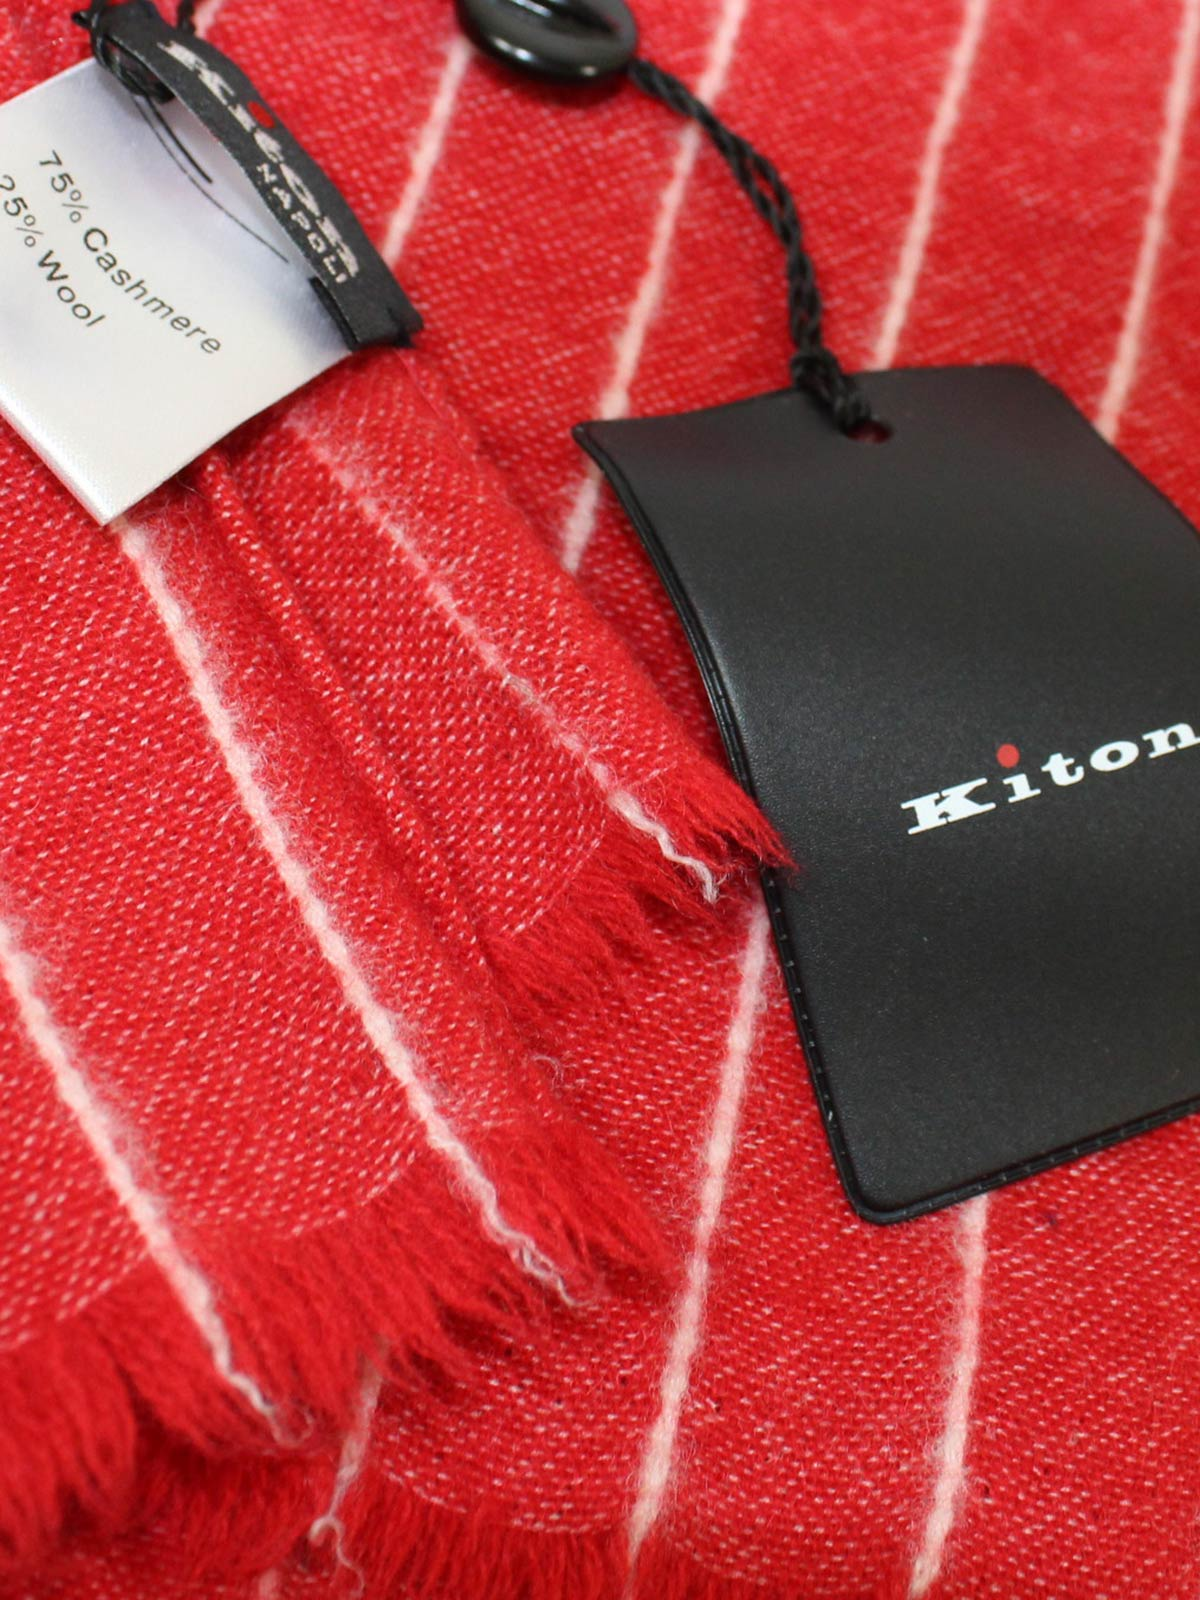 Kiton Scarf Red White Stripes Cashmere Wool FINAL SALE